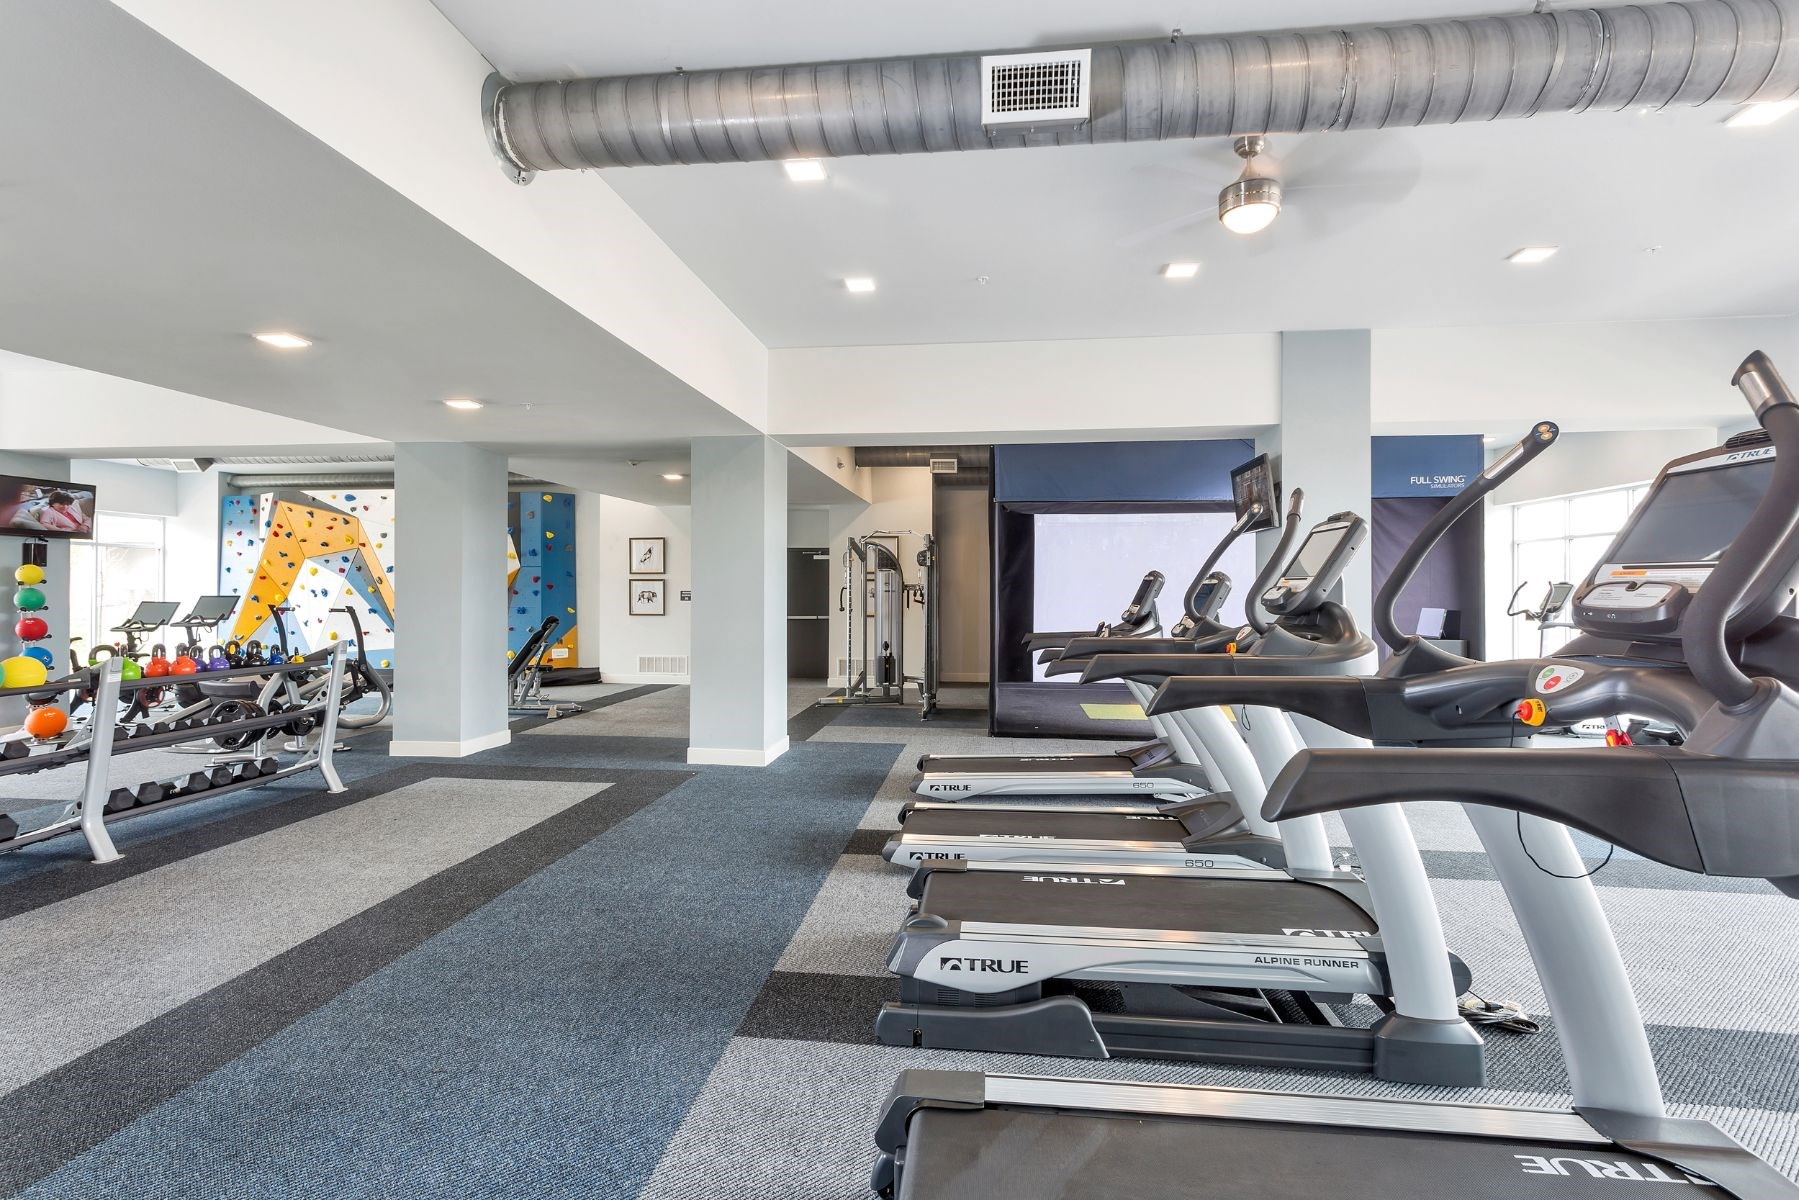 Westwood Green Apartments Fitness Center cardio equipment including treadmills and elypticals